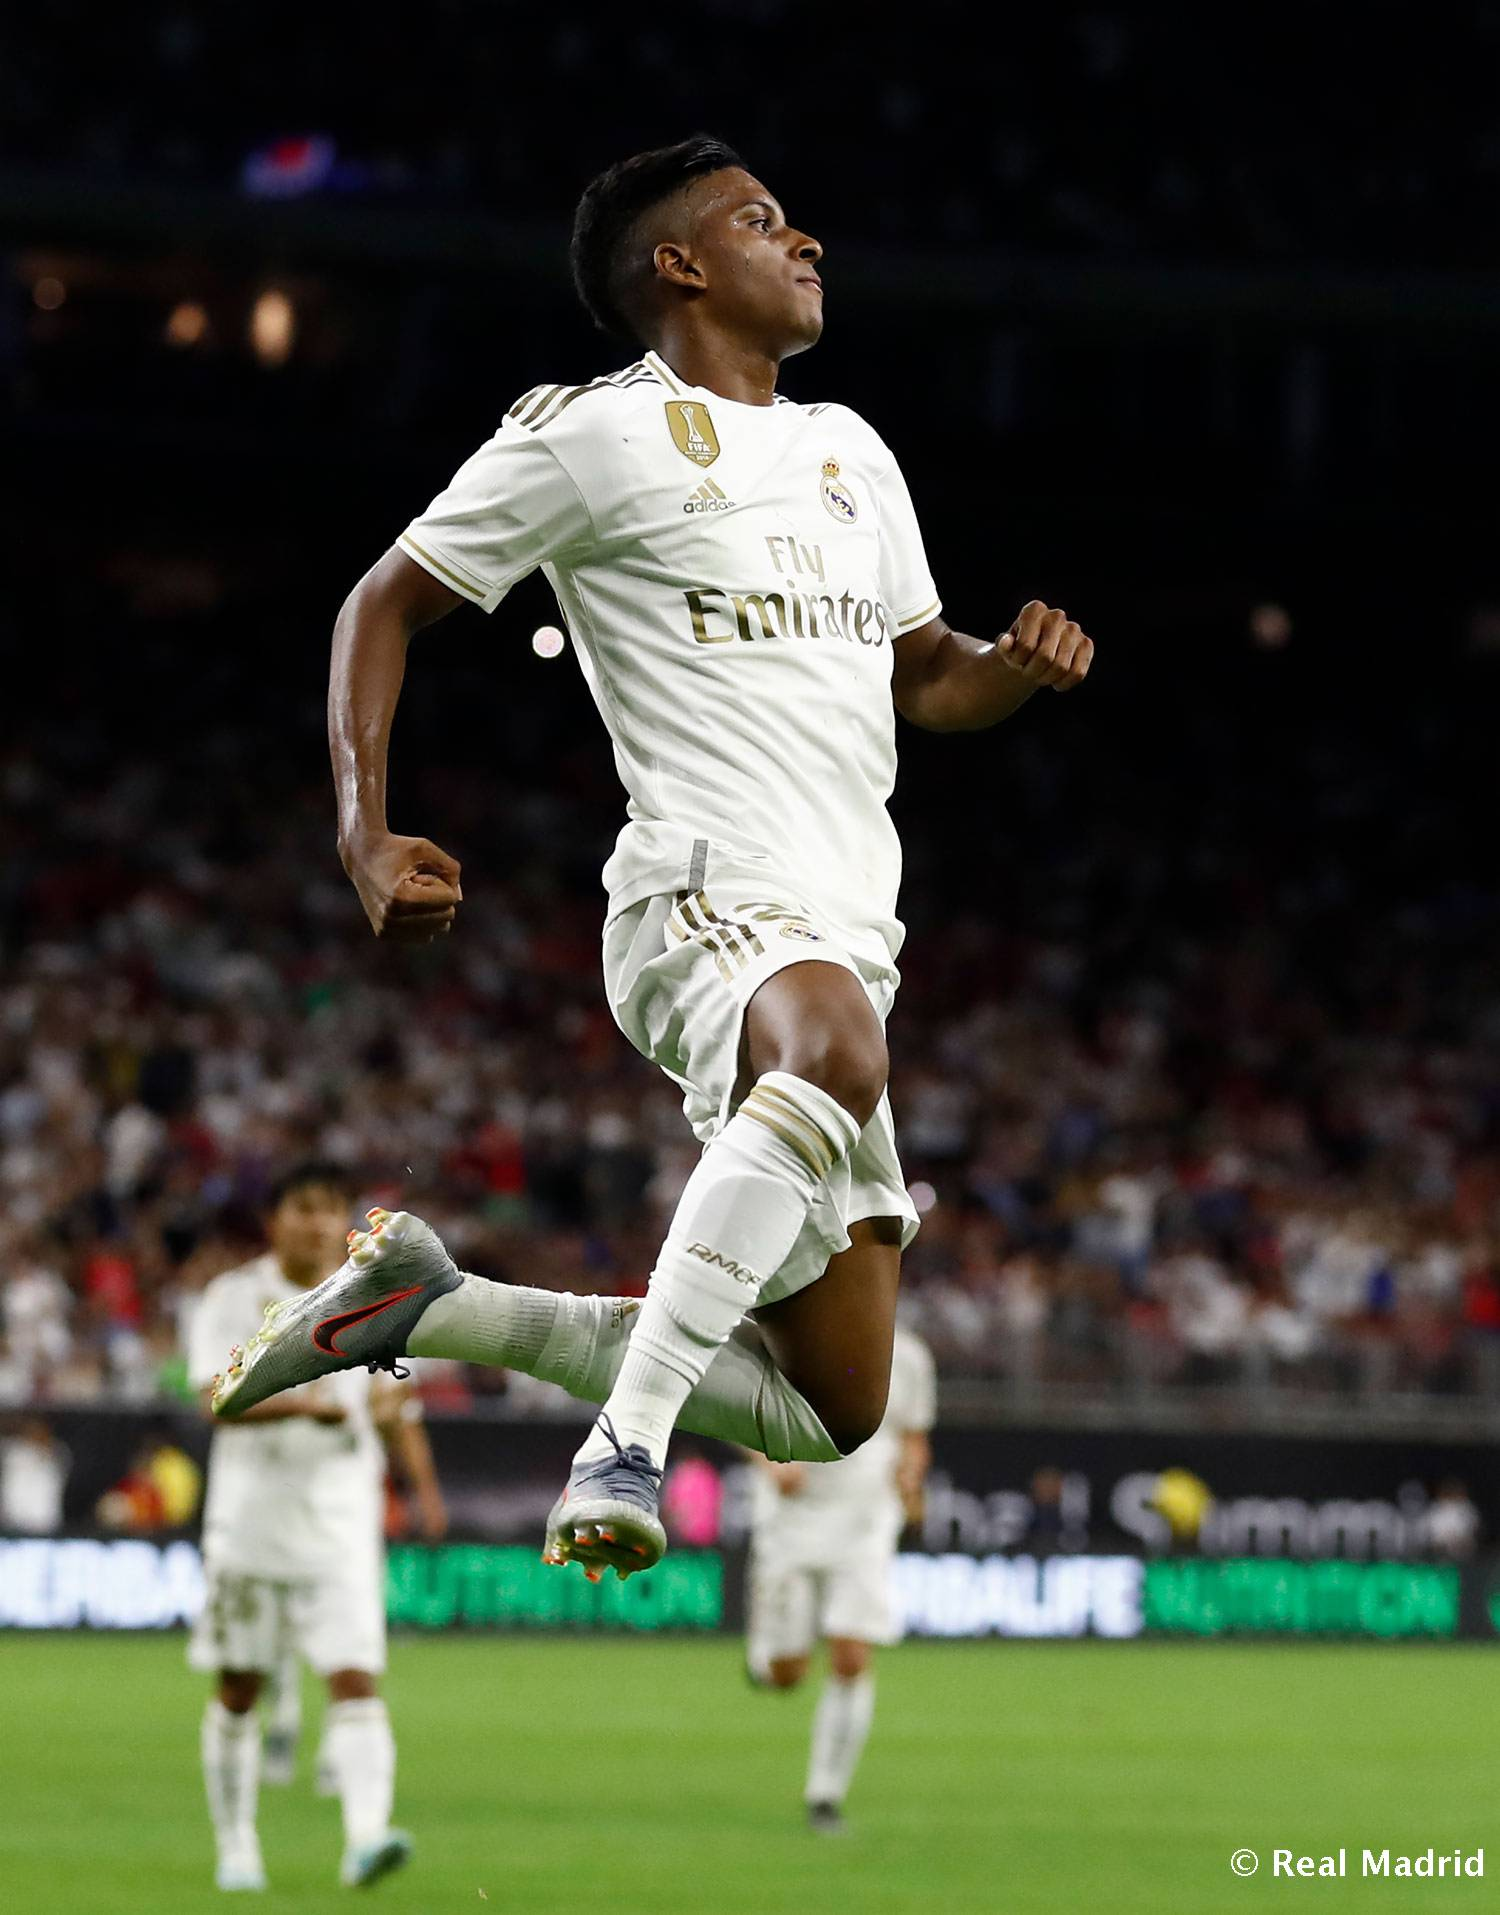 Real Madrid - Debut de Rodrygo con el Real Madrid - 21-07-2019